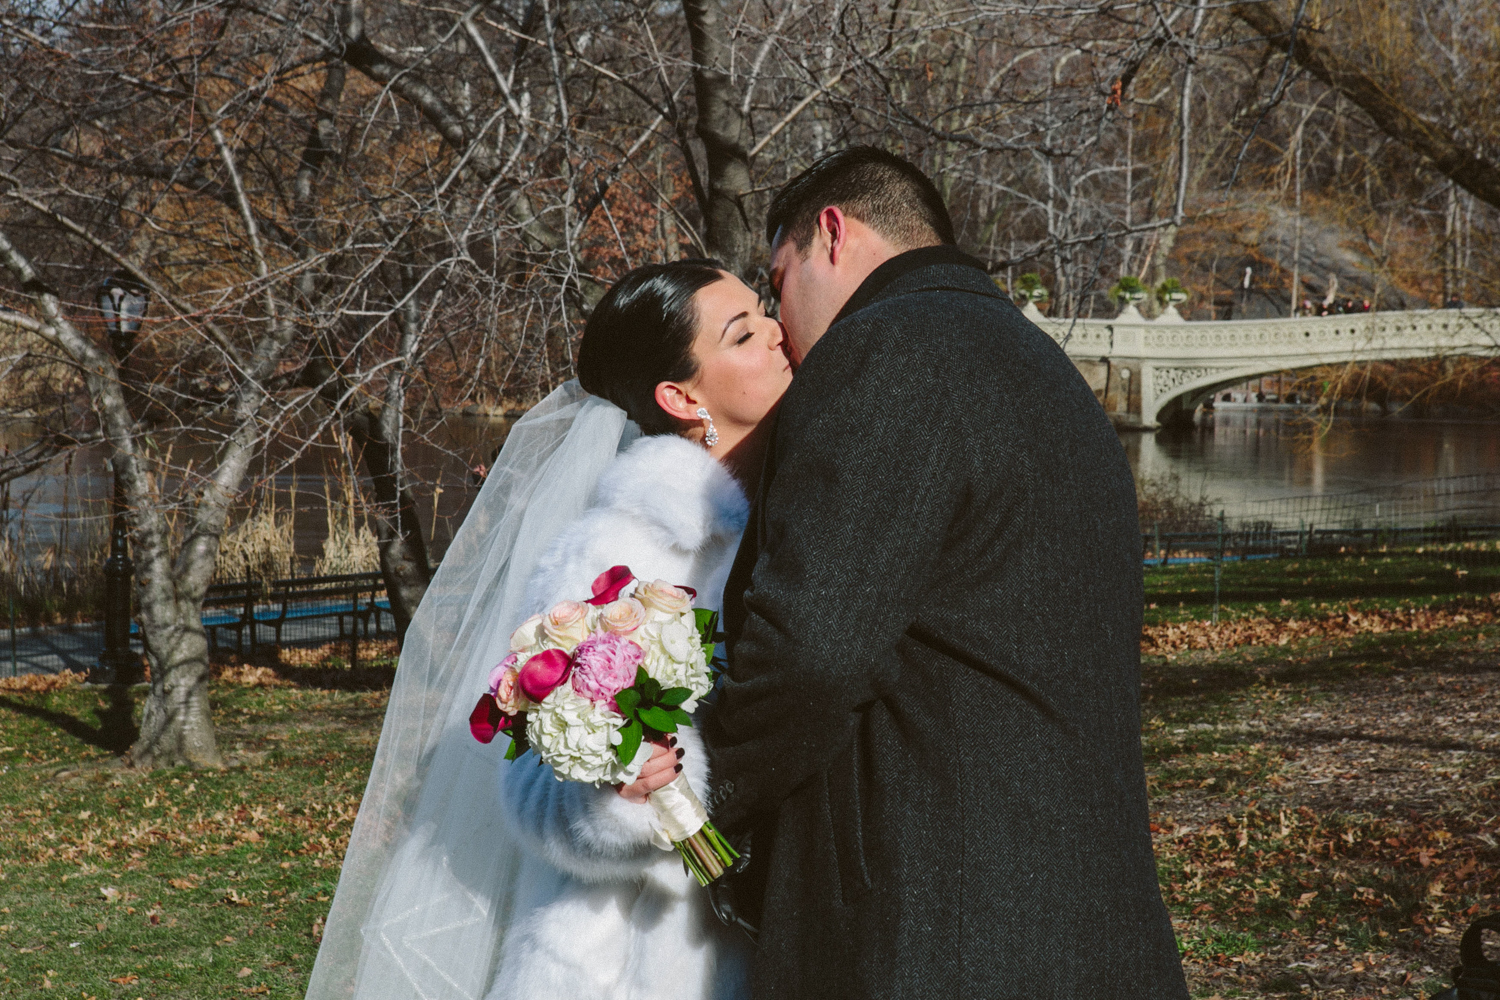 Bride and groom share a kiss on their wedding day